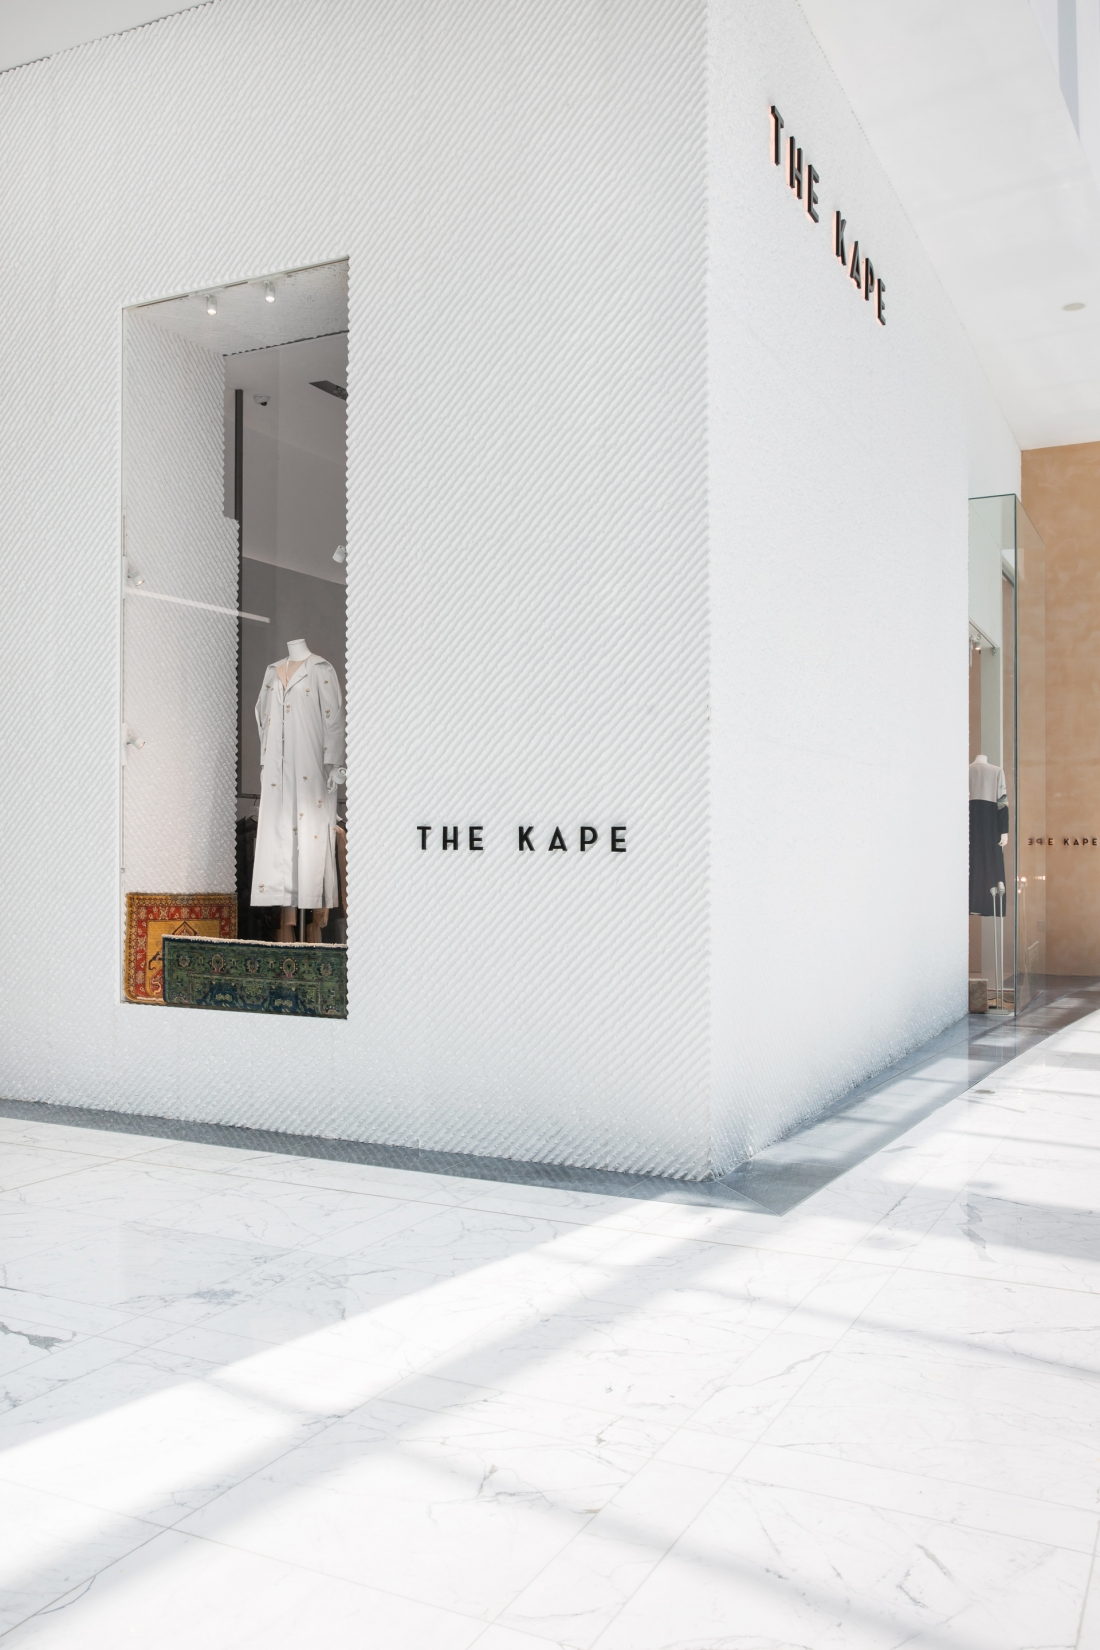 THE KAPE Dubai by SUPERFUTUREDESIGN*